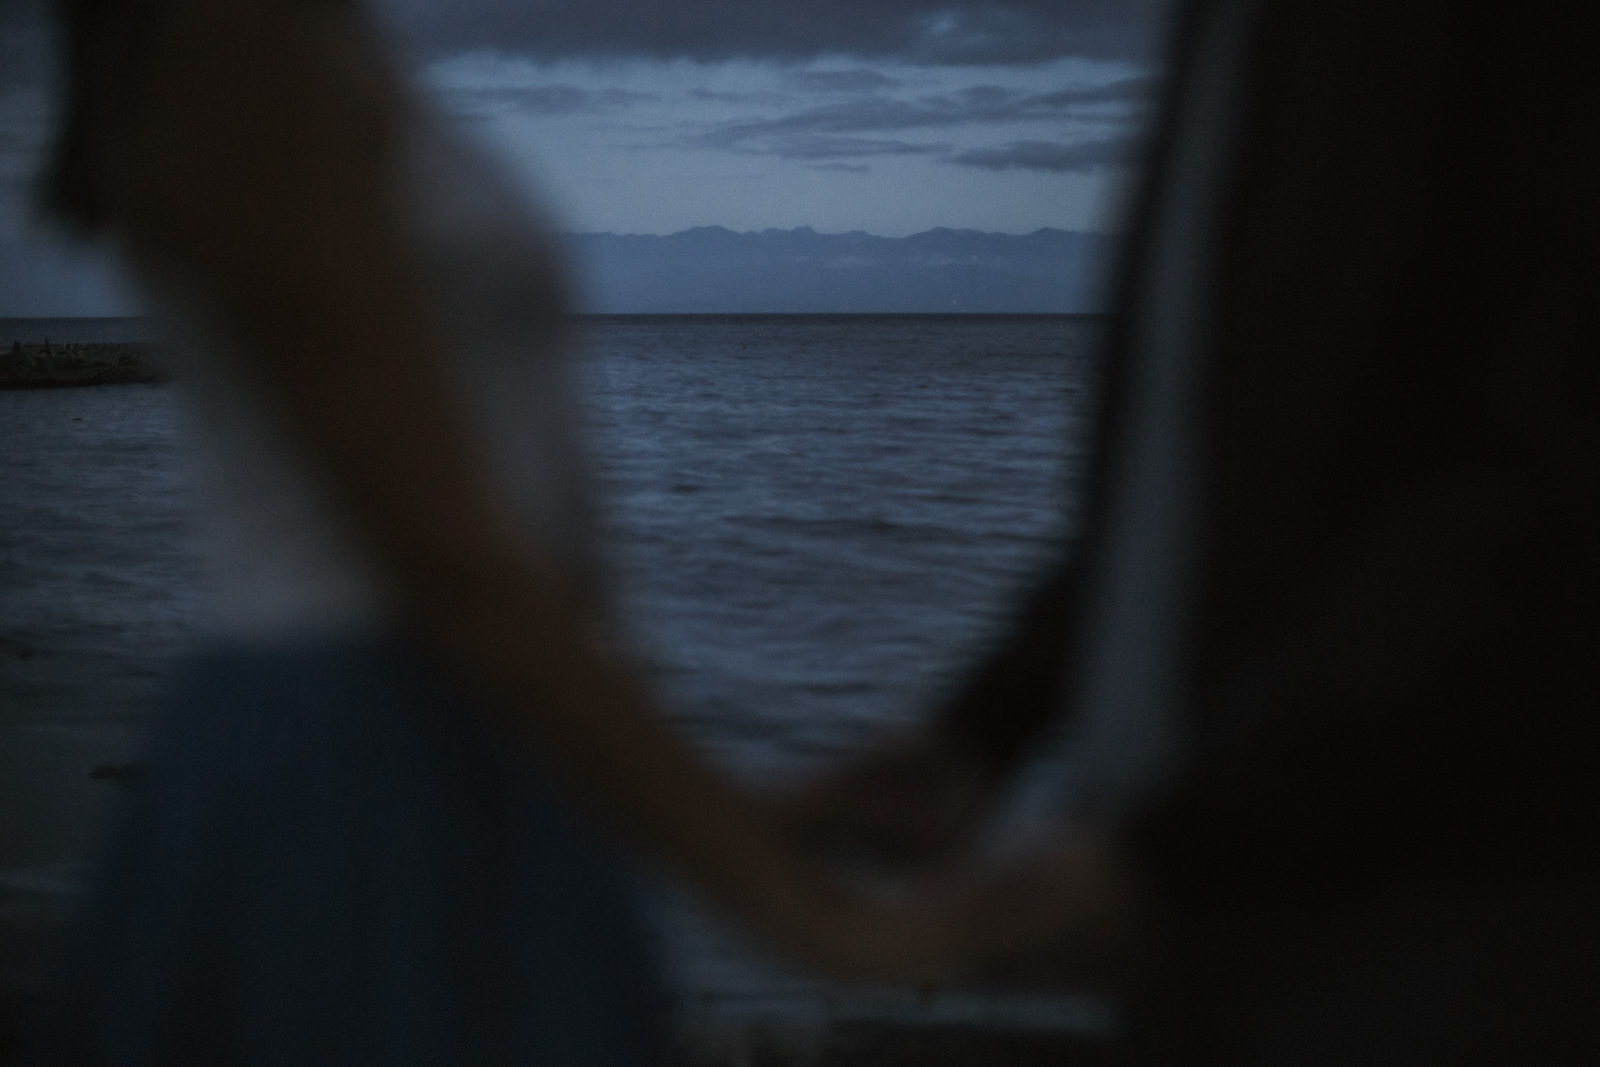 beach Blue Hour - astrophotography engagement session vancouver island-53.jpg